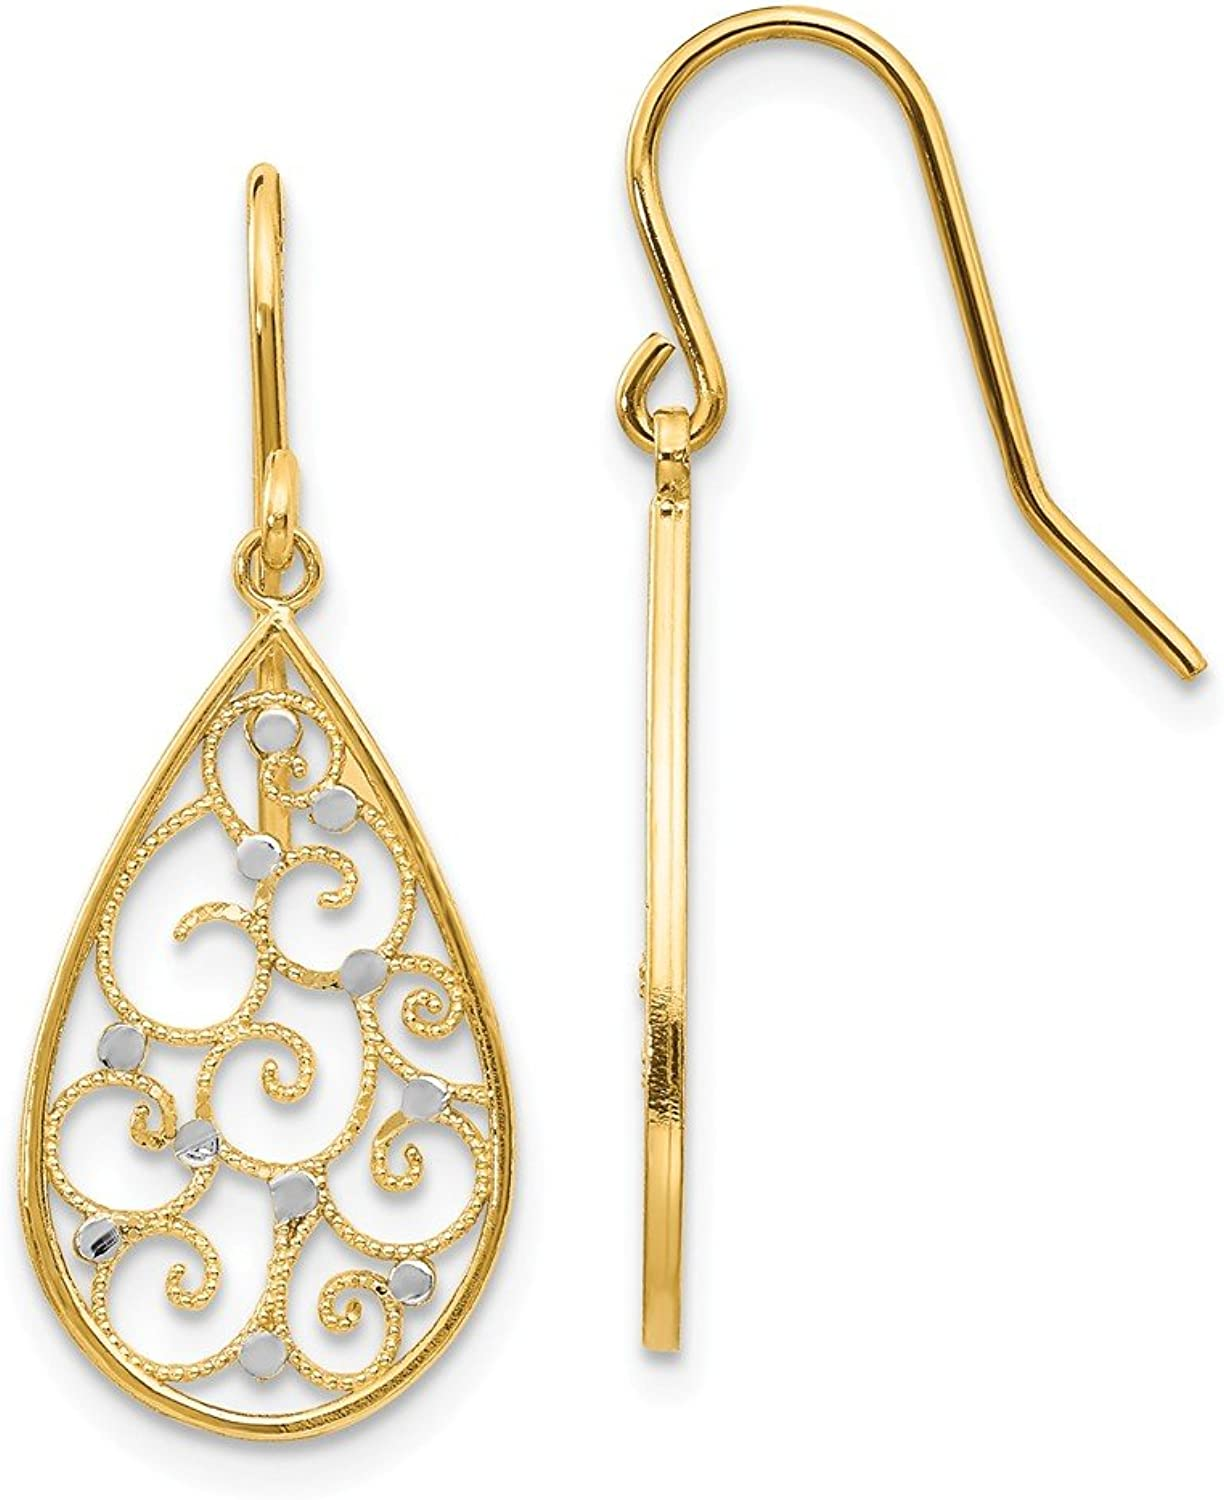 Rhodiumplatedgoldandsilver 14k & Rhodium Polished Teardrop Earrings